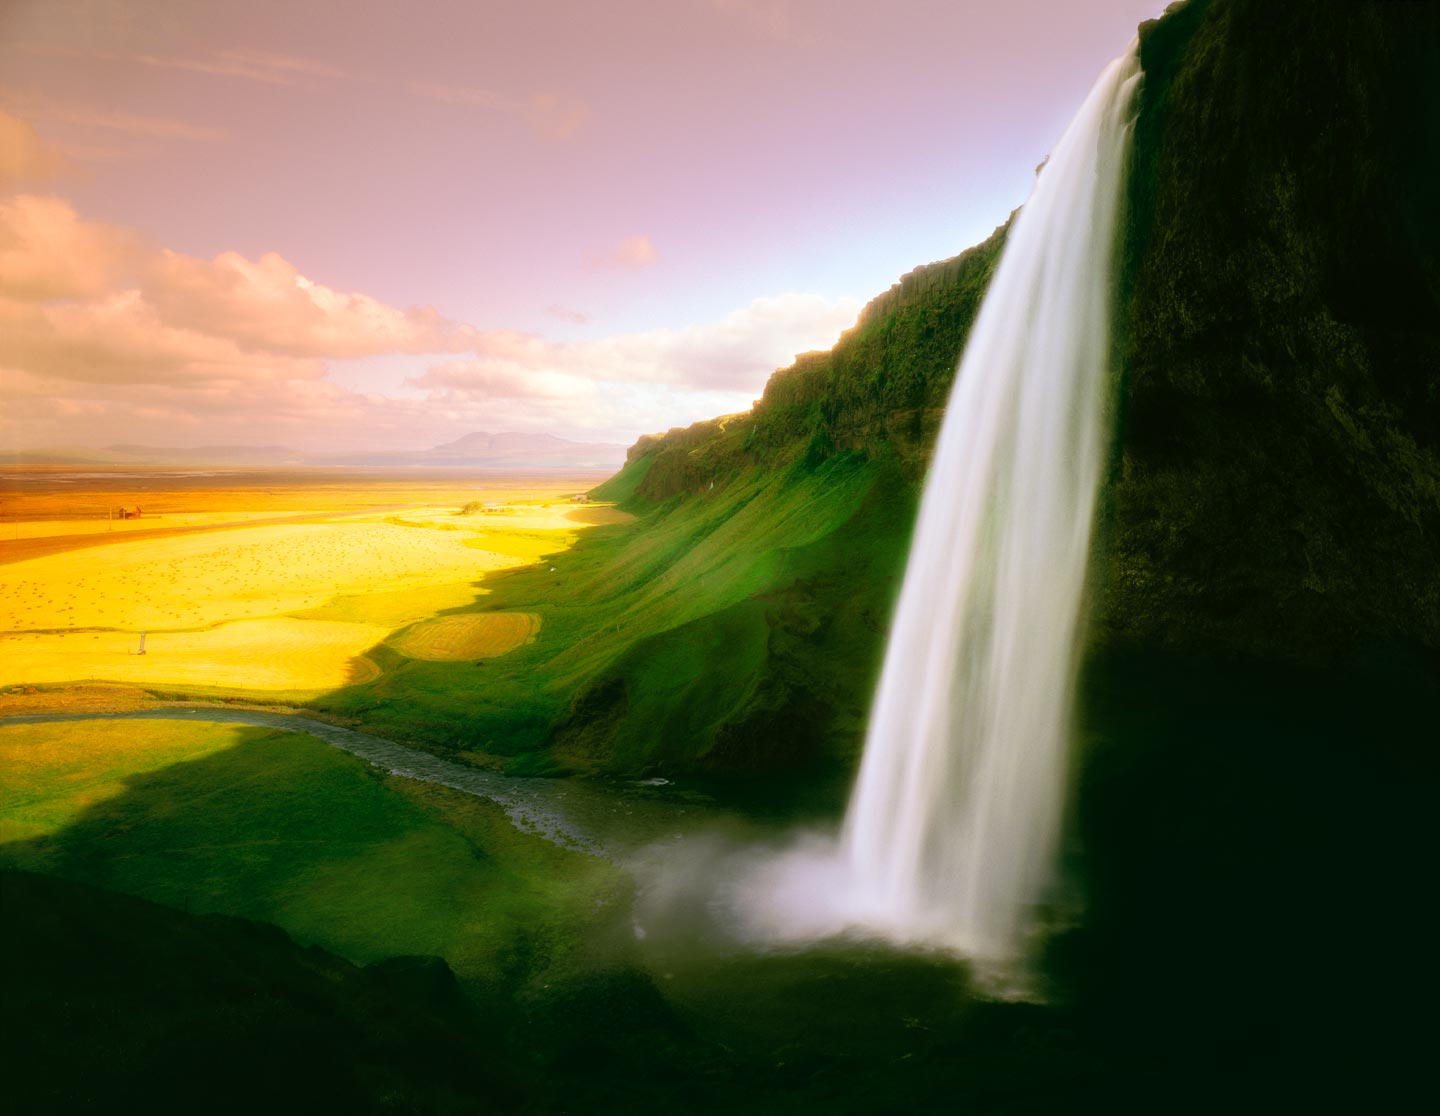 Icelandic landscape by photographer Ron Bambridge. This is the Seljalandsfoss waterfall on the south side of the island